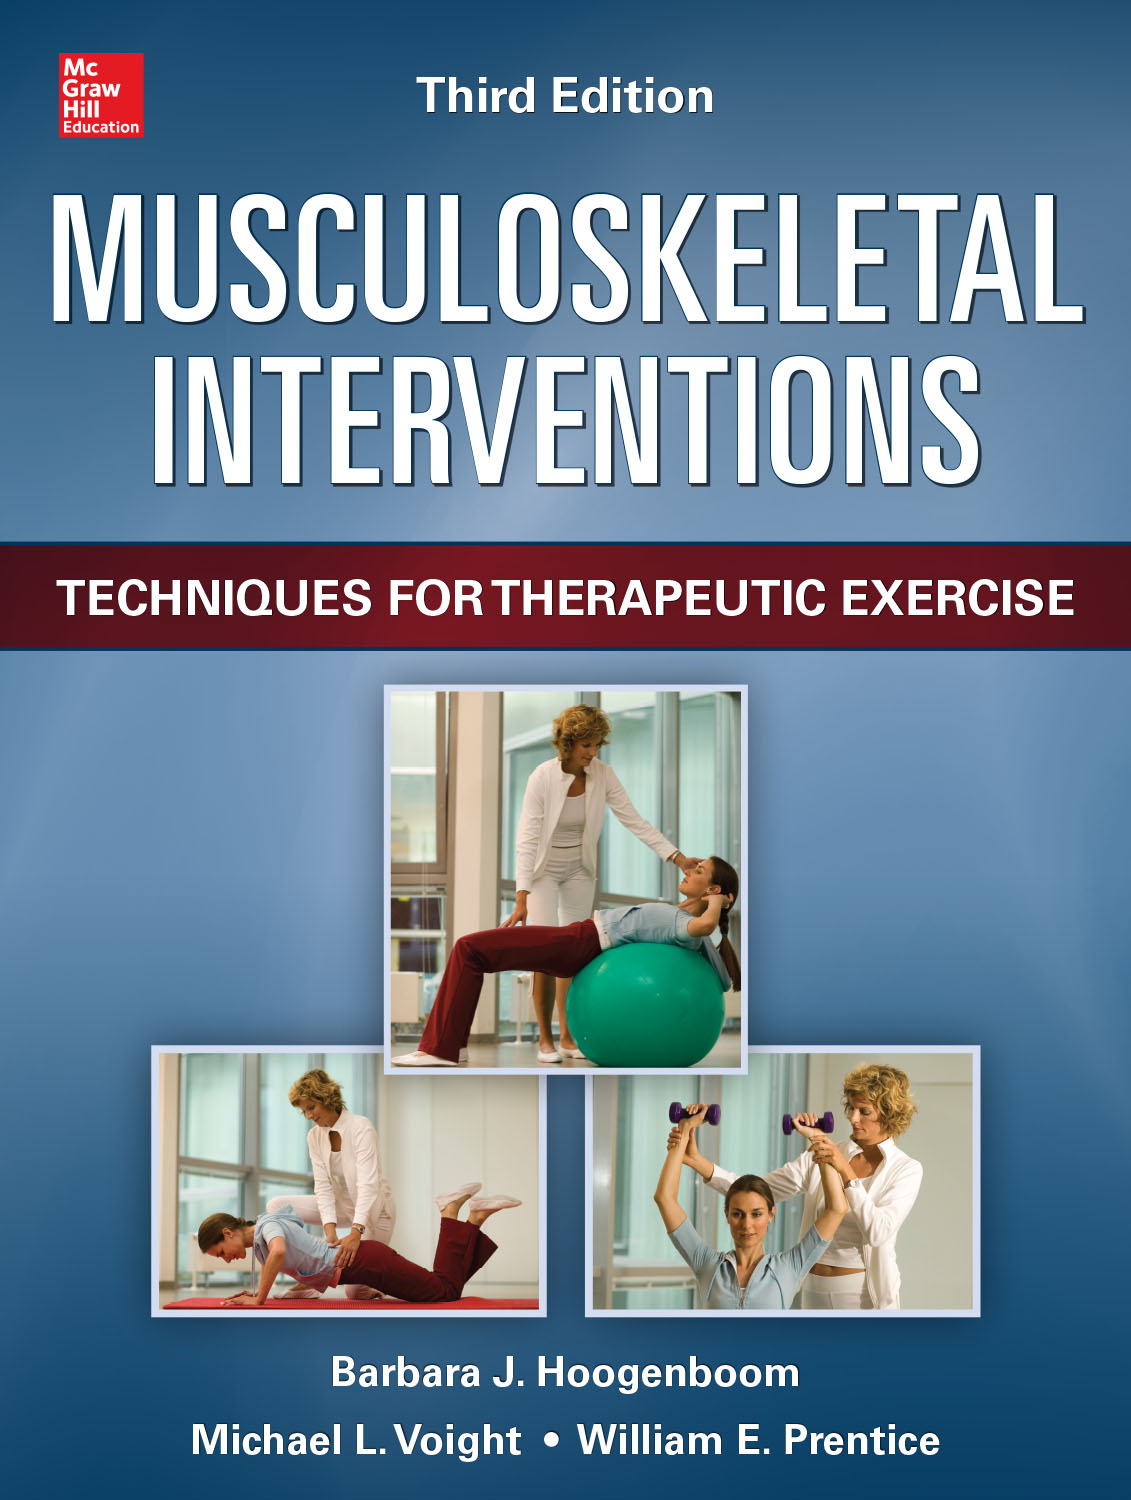 Musculoskeletal Interventions: Techniques for Therapeutic Exercise, 3e